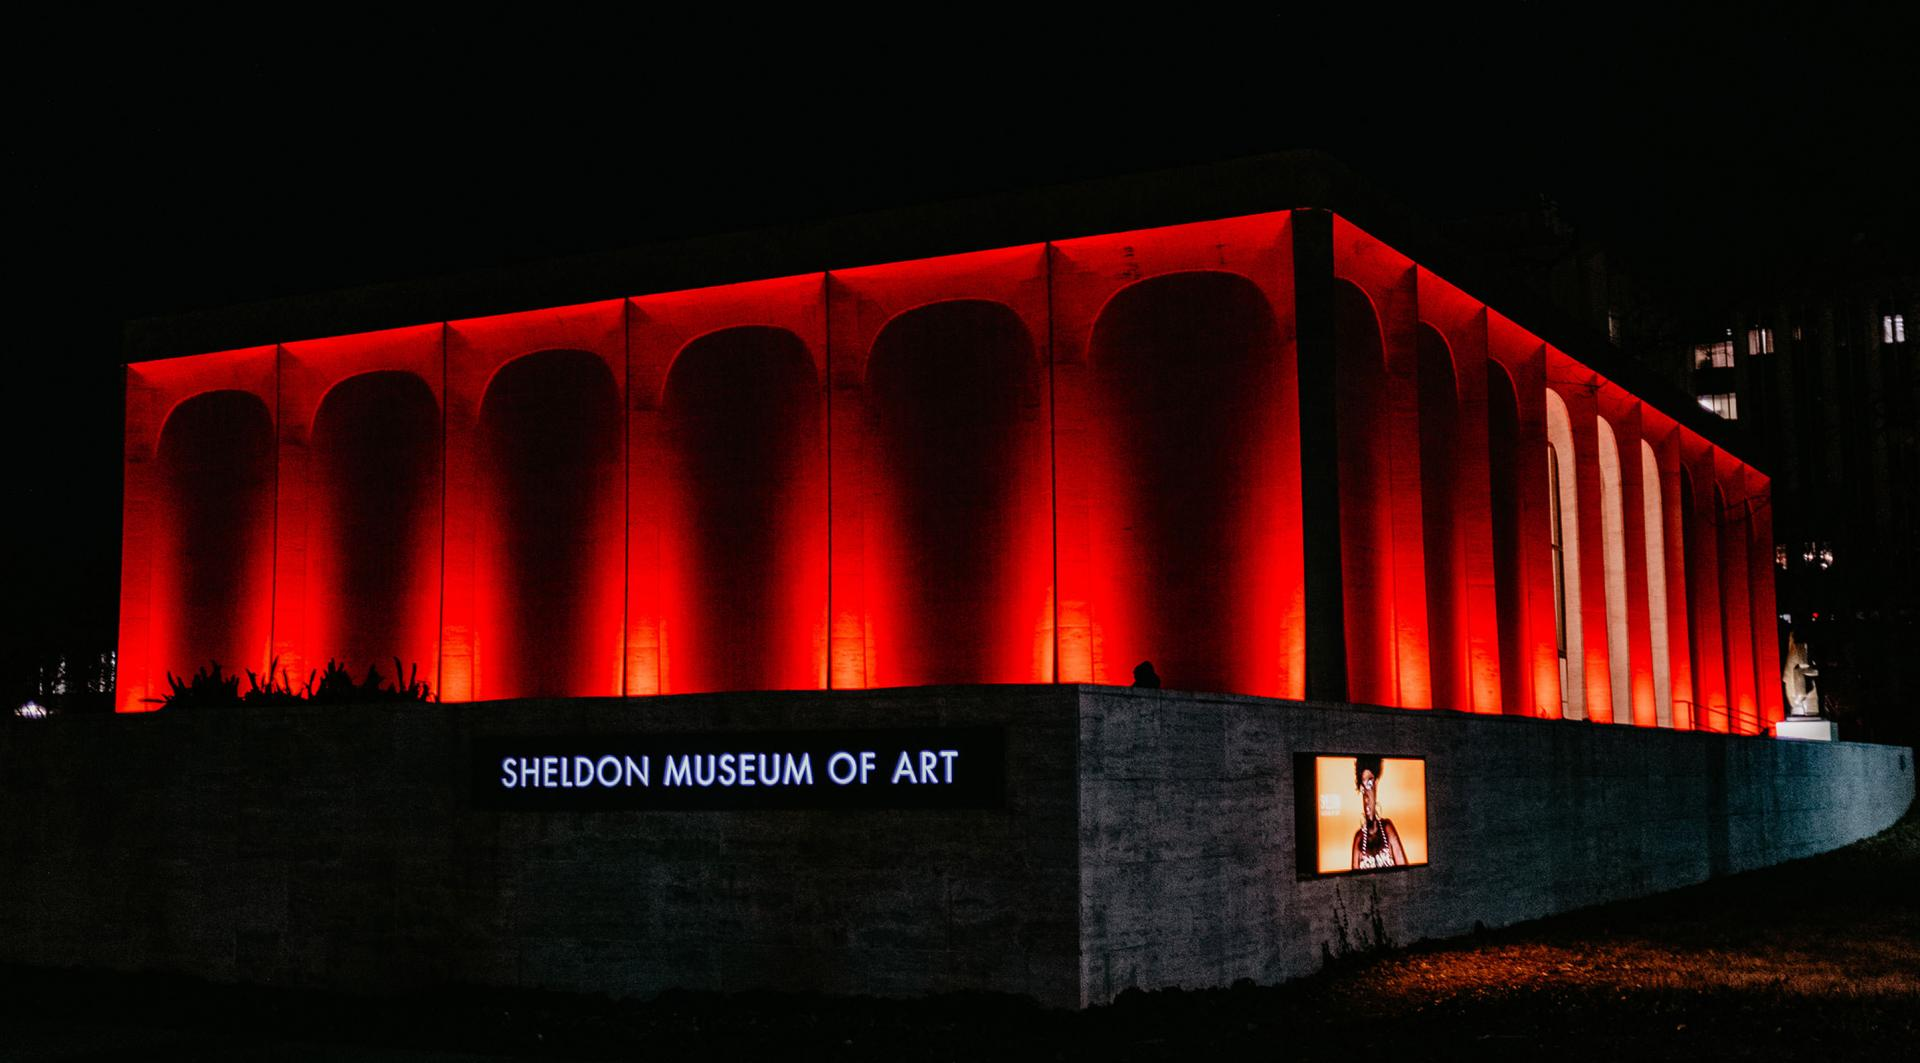 Sheldon Museum of Art west façade